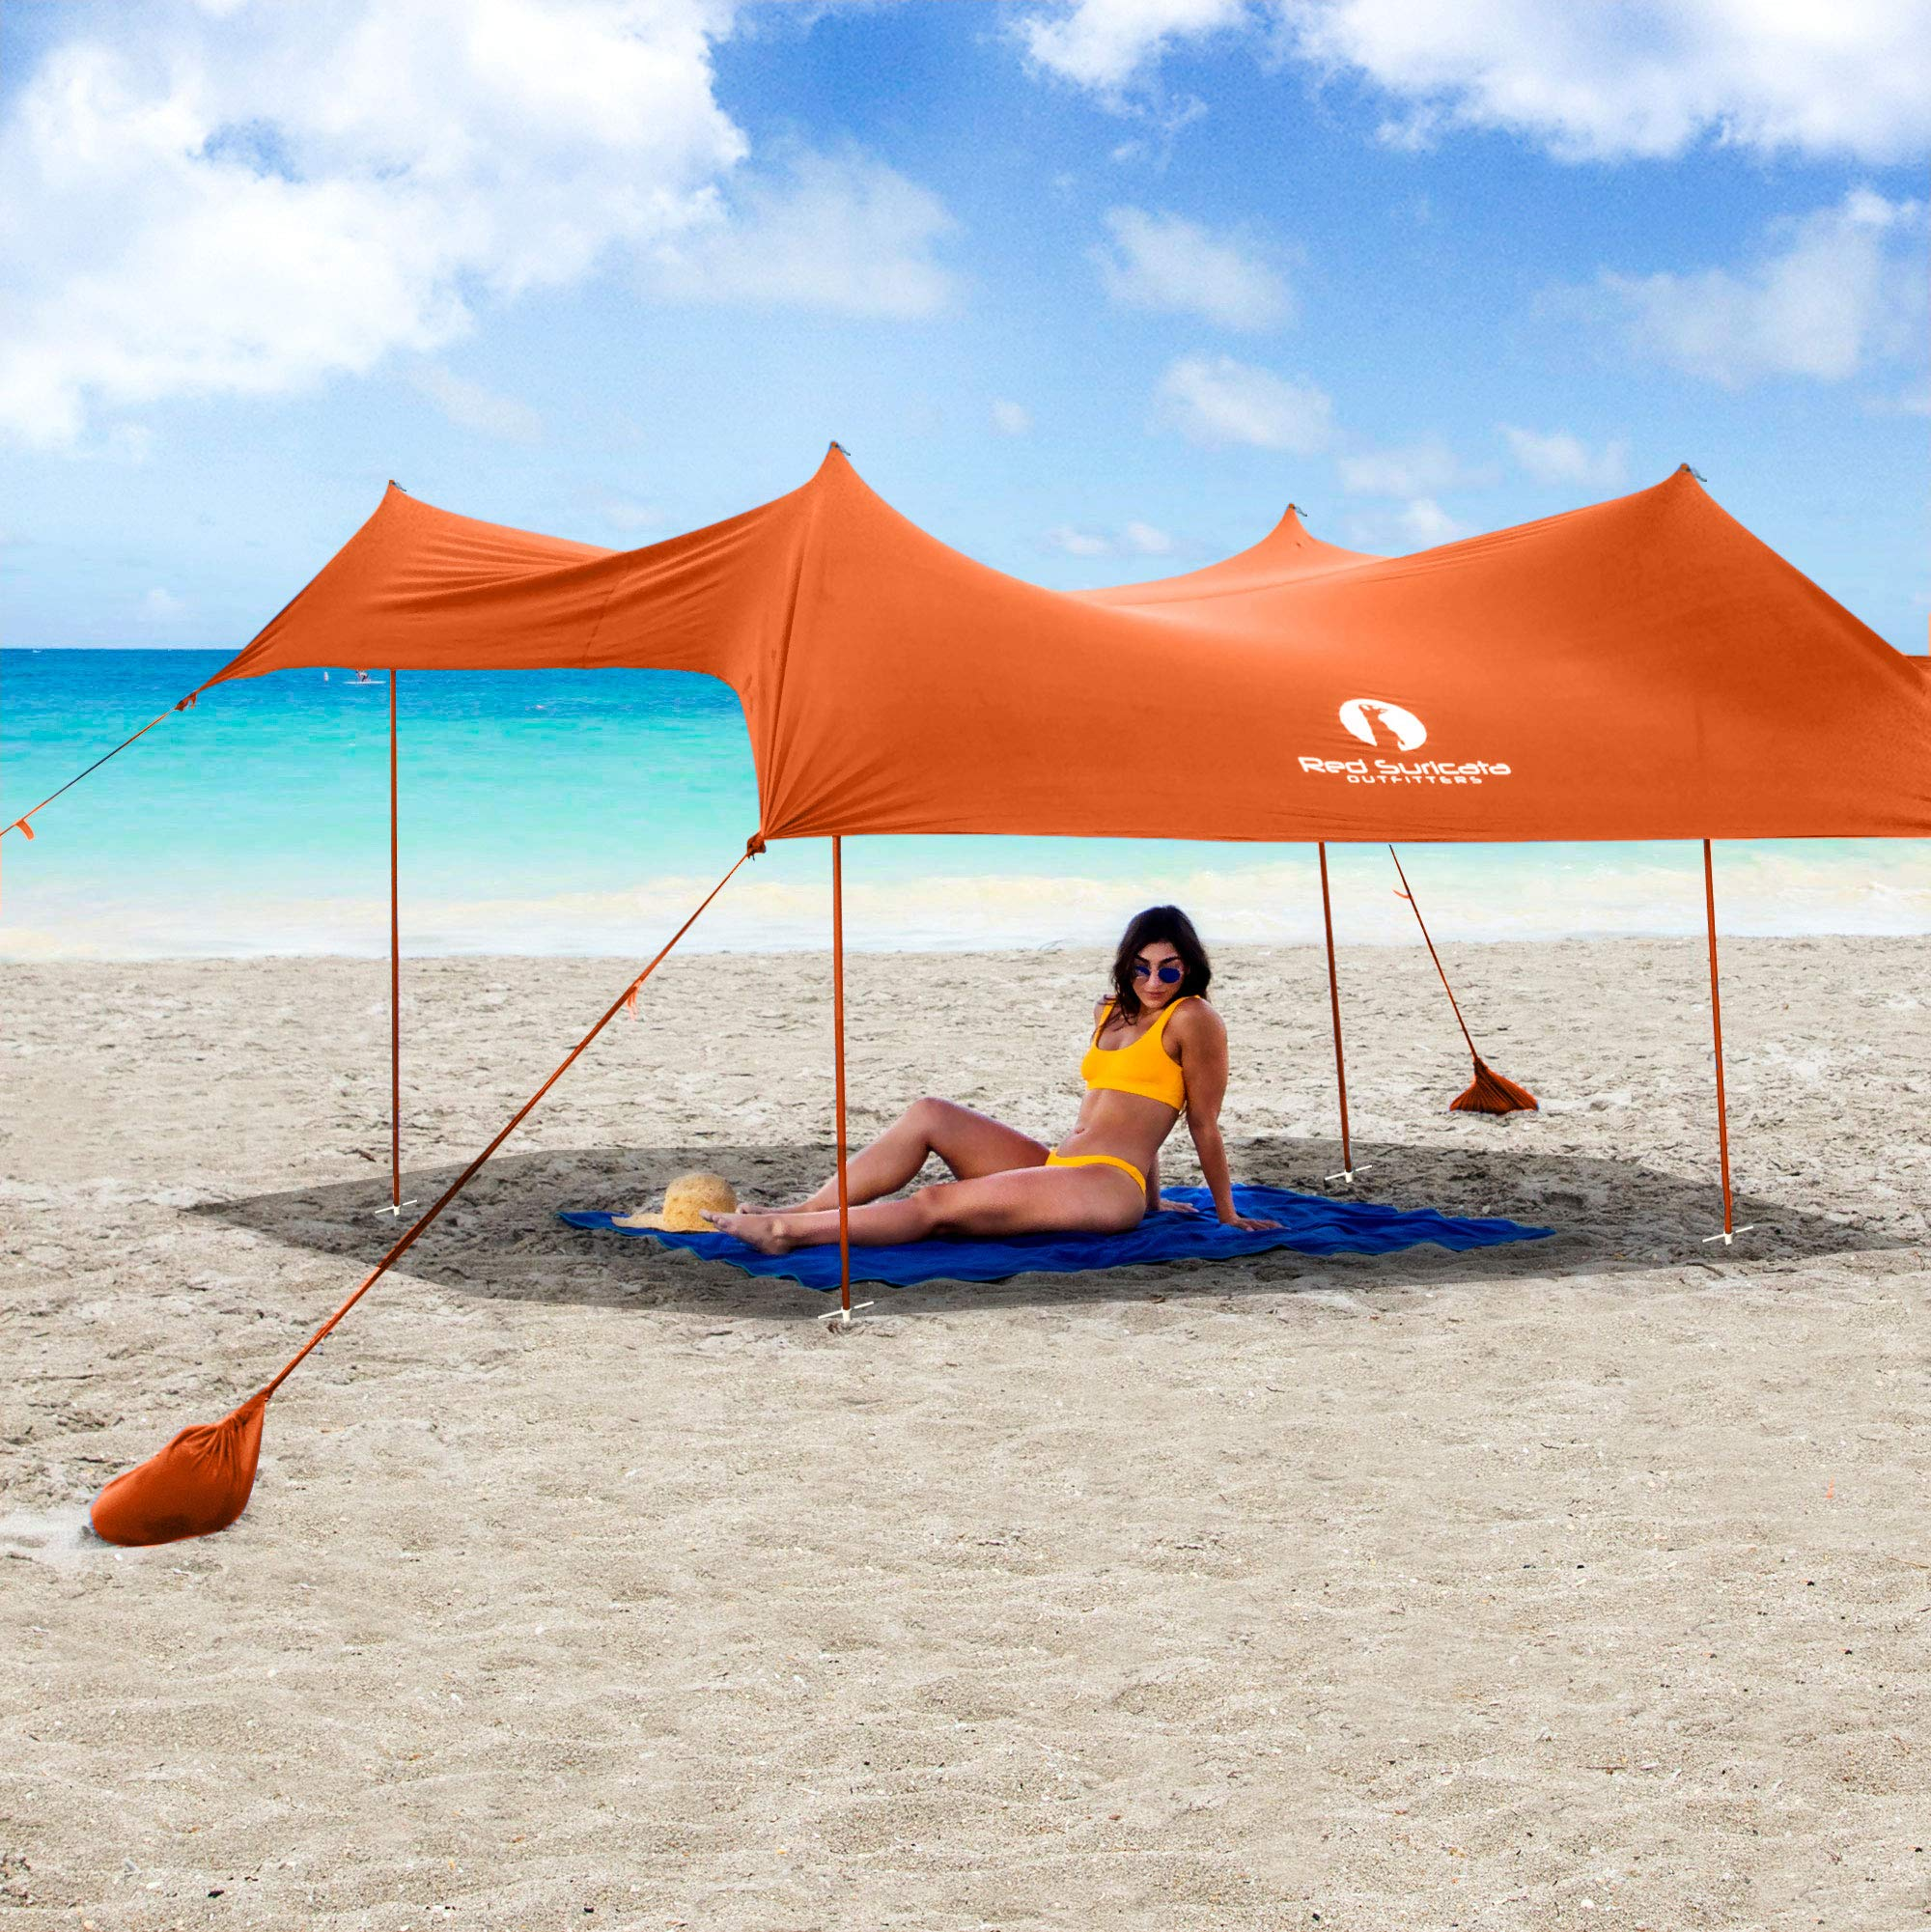 Red Suricata Family Beach Sunshade - Sun Shade Canopy | UPF50 UV Protection | Tent with 4 Aluminum Poles, 4 Pole Anchors, 4 Sandbag Anchors | Large & Portable Shelter Tarp (Orange, Medium) by Red Suricata